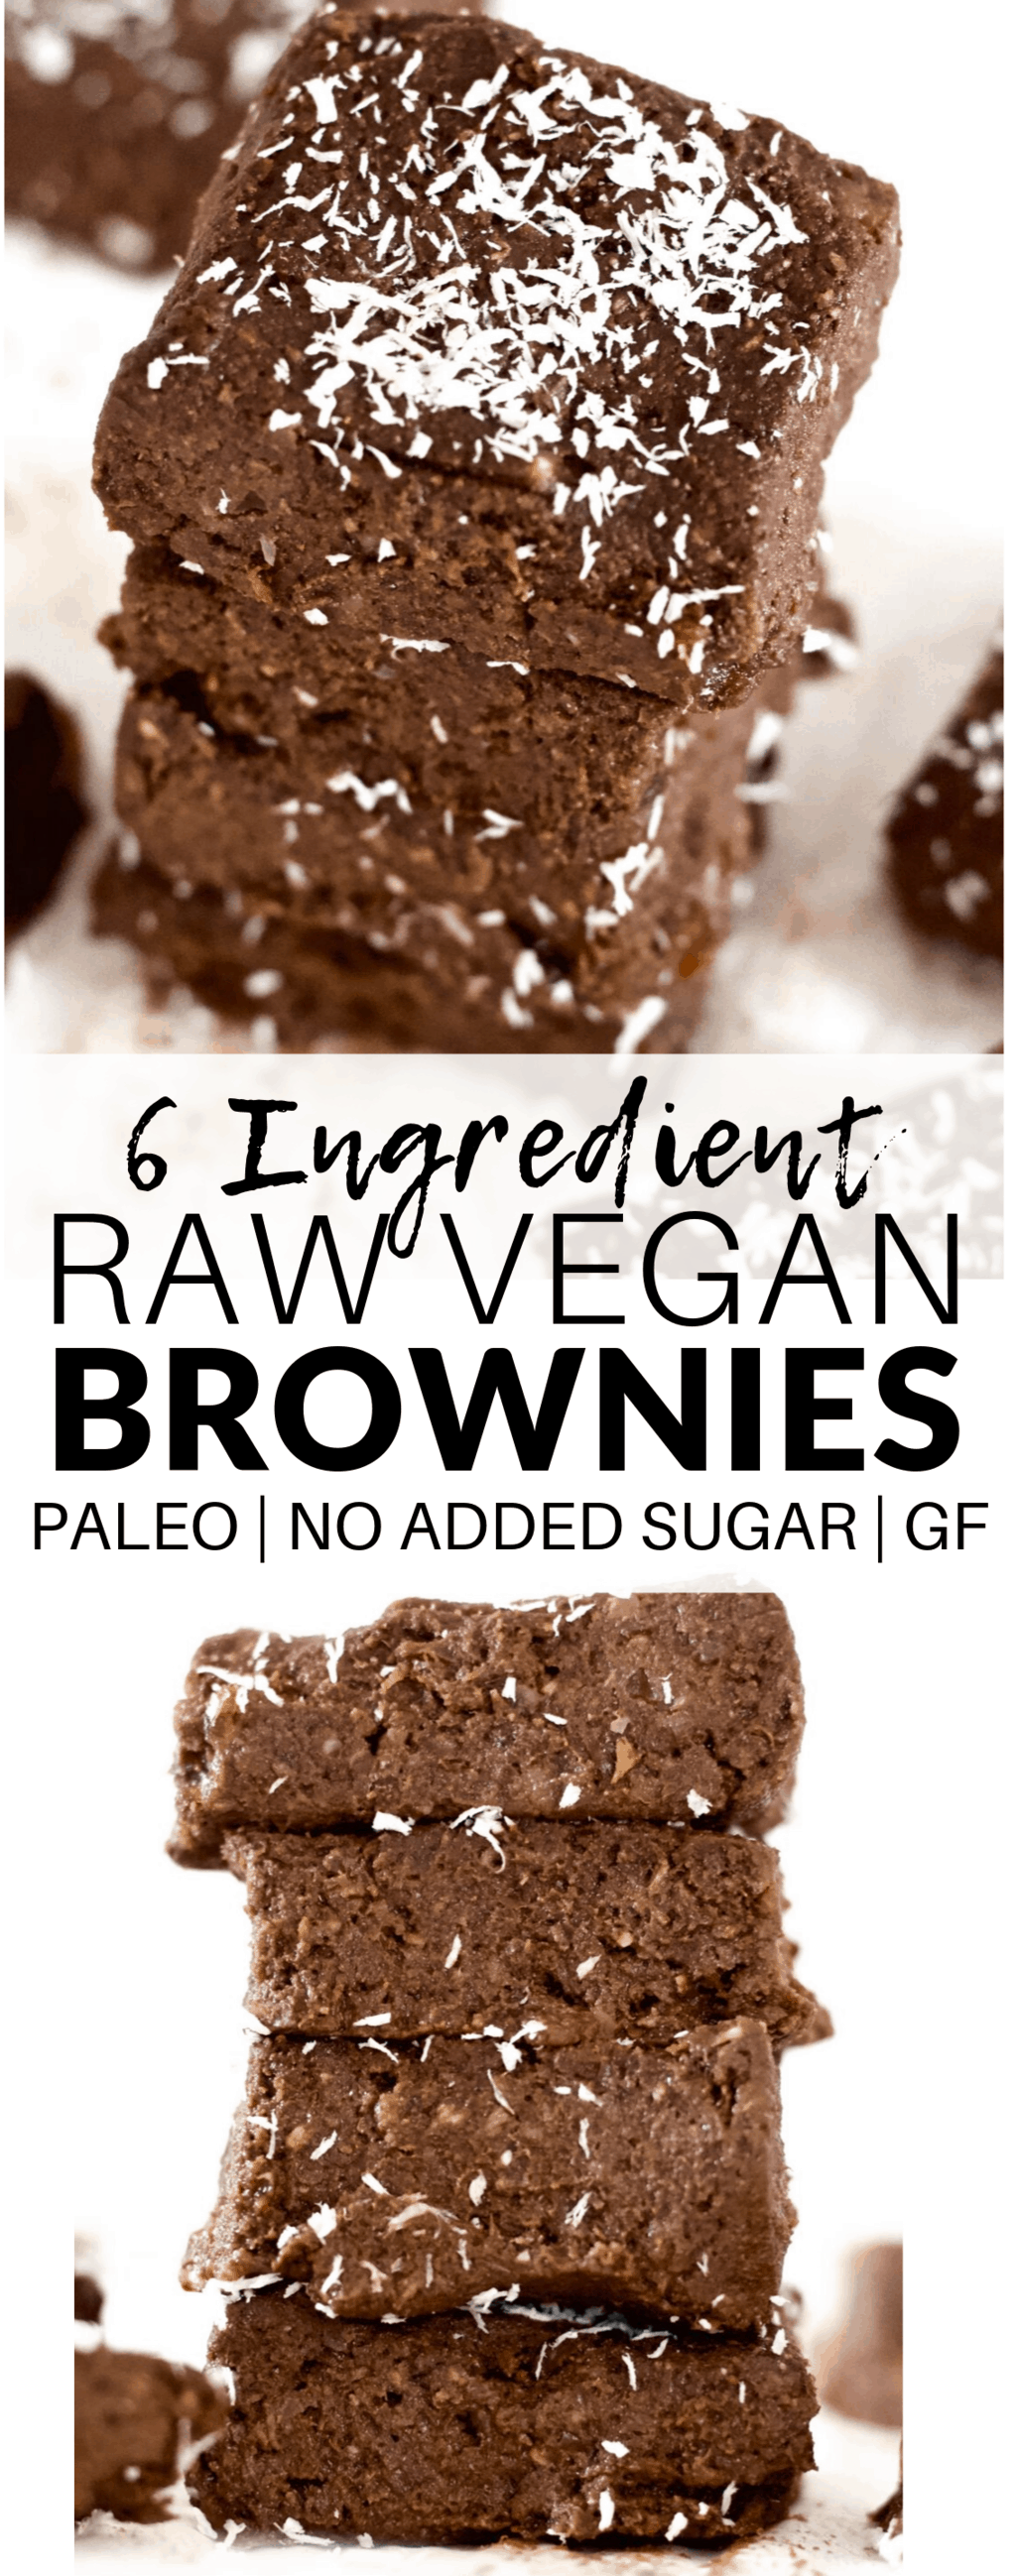 These drool-worthy No-Bake Raw Vegan Brownies are sinfully delicious, yet packed with superfood nutrition! They're super easy to make and come together in a snap - only 6 ingredients! They are also gluten-free, paleo, oil-free, and sugar-free.